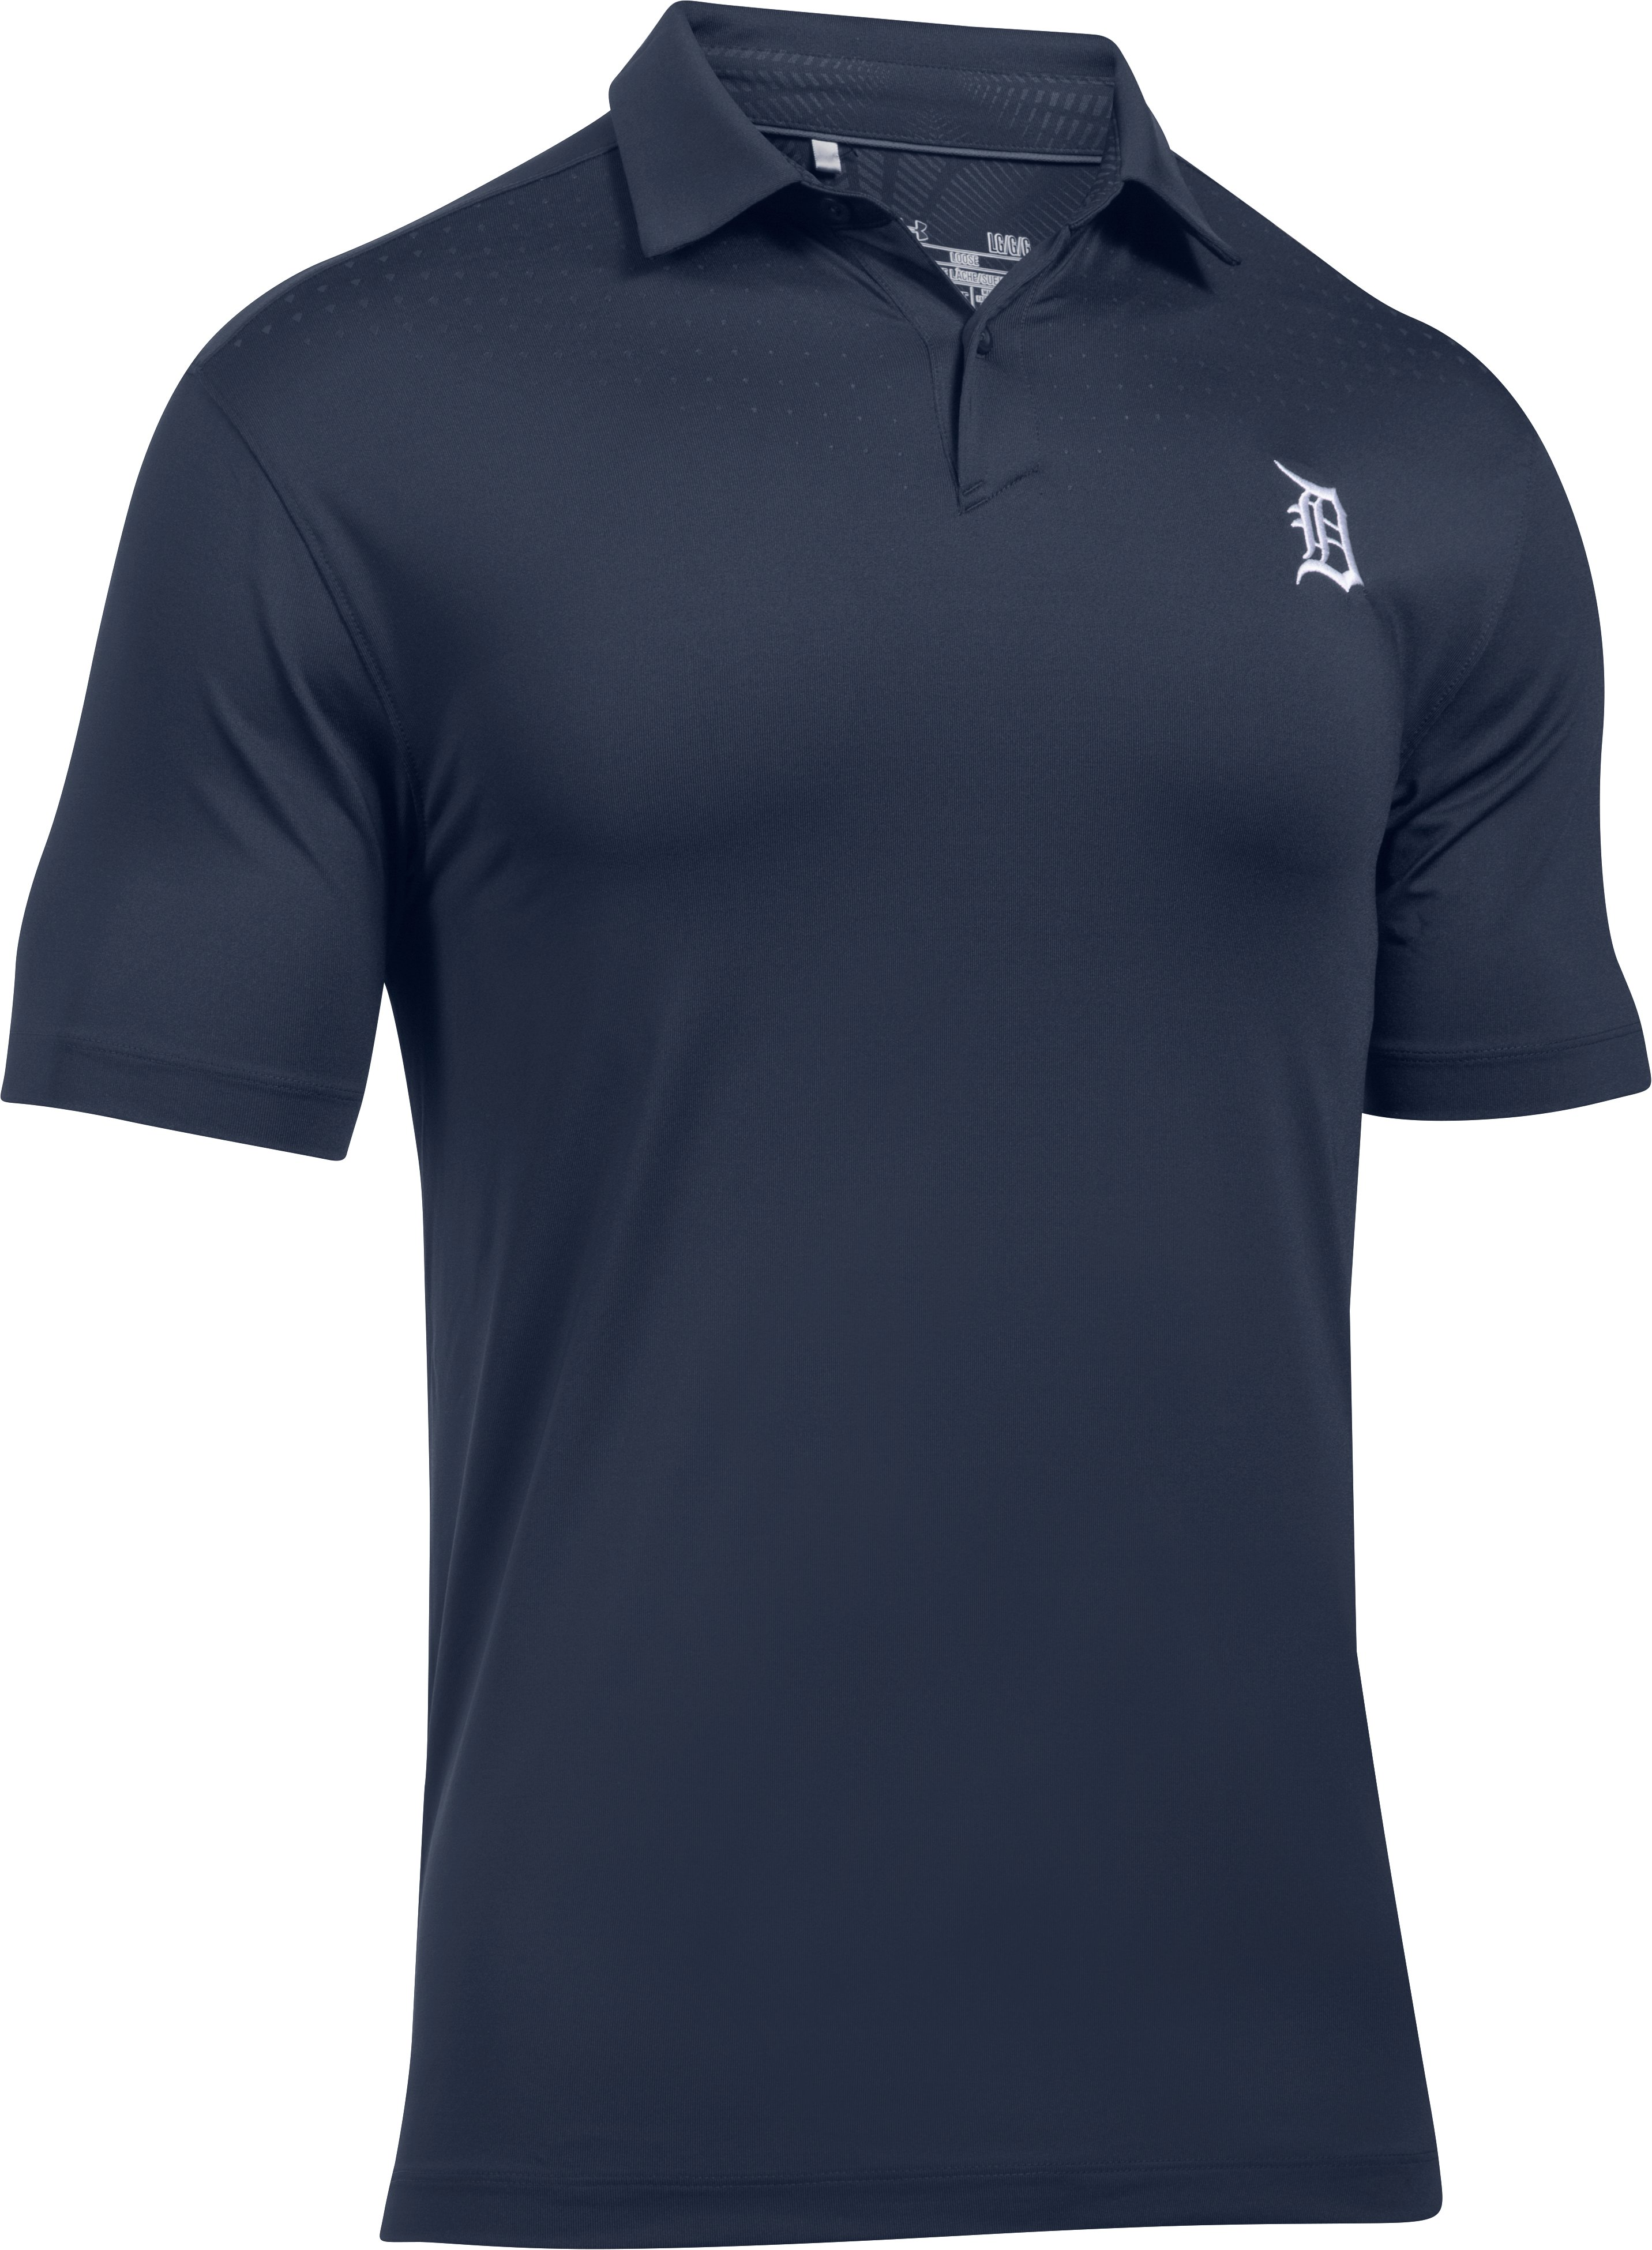 Men's Detroit Tigers CoolSwitch Polo, Midnight Navy,